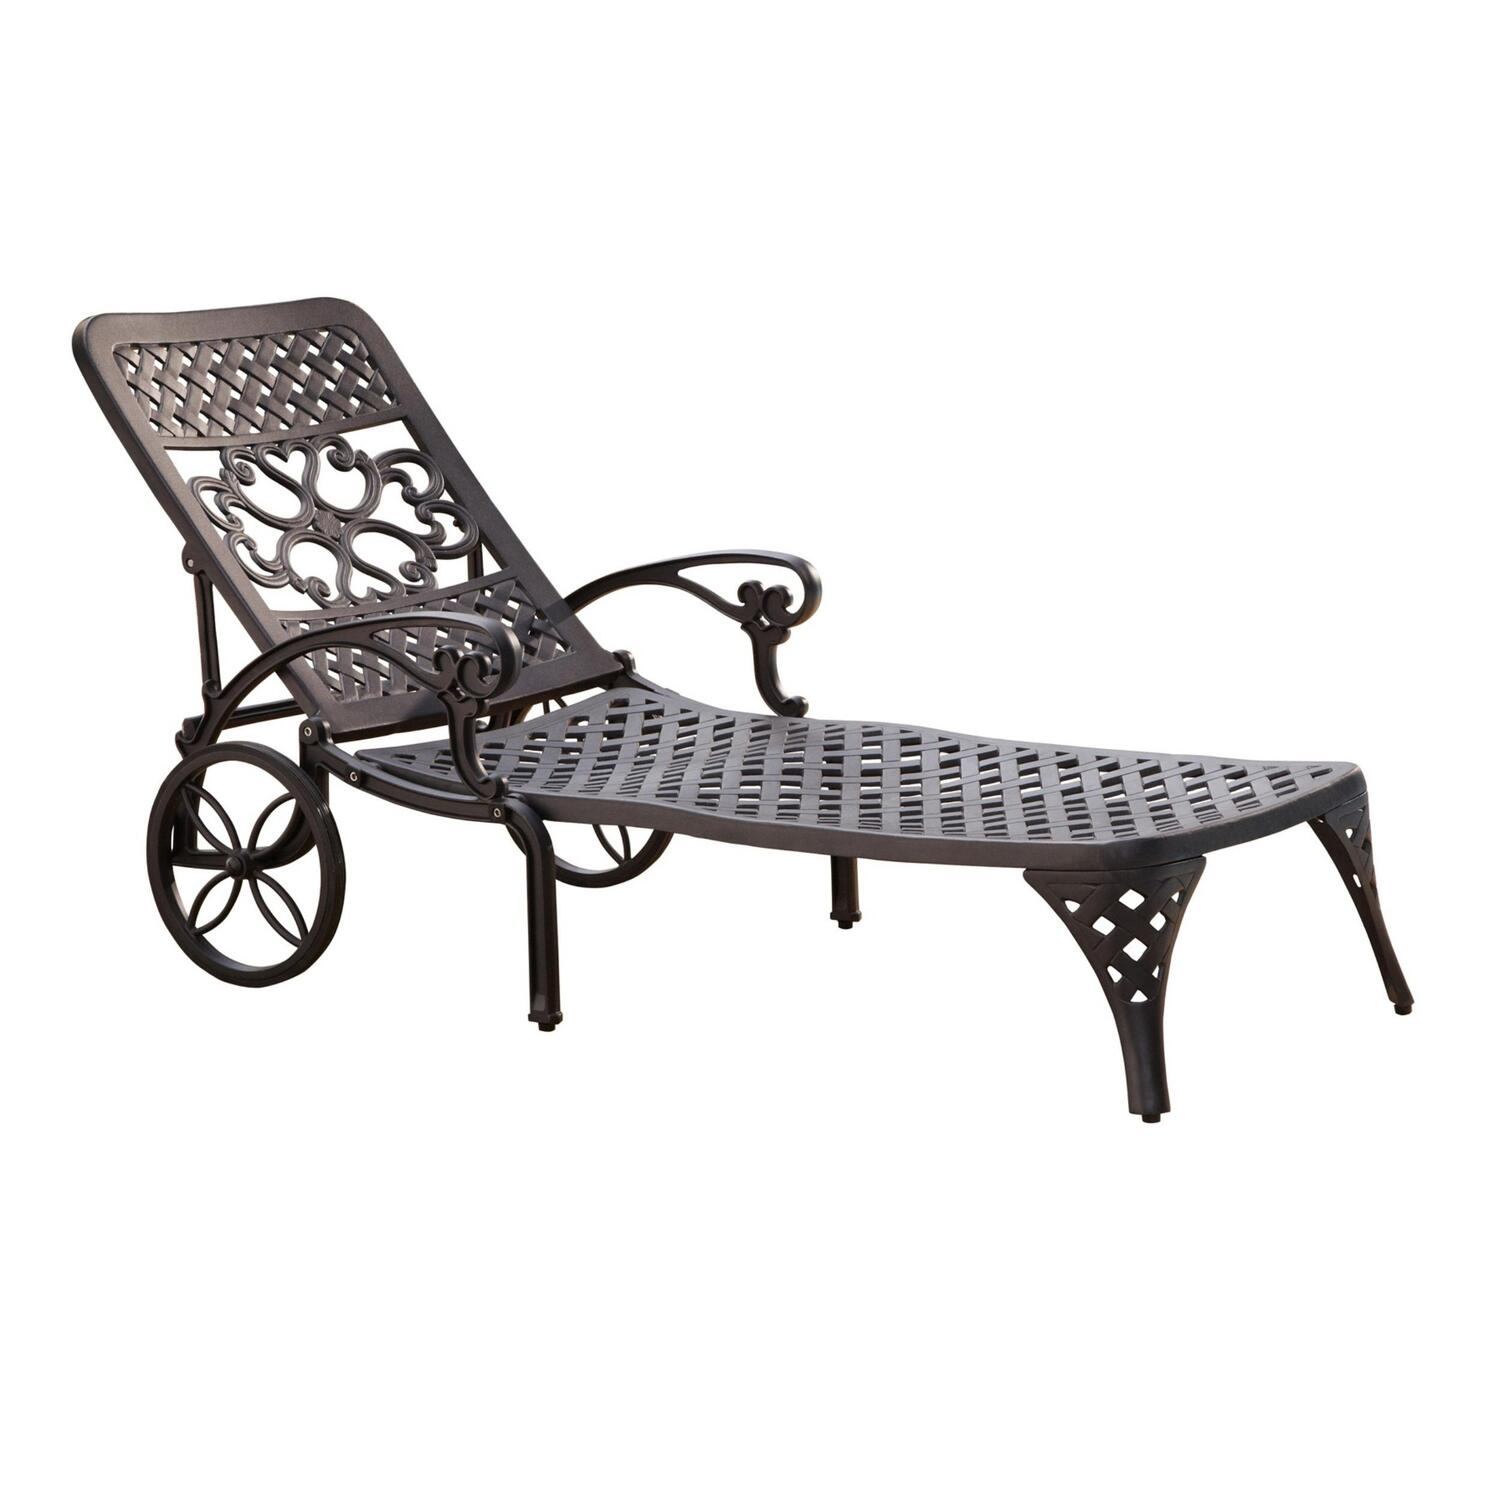 Home Styles Biscayne Chaise Lounge Chair by OJ Commerce $331.02 - $372 ...